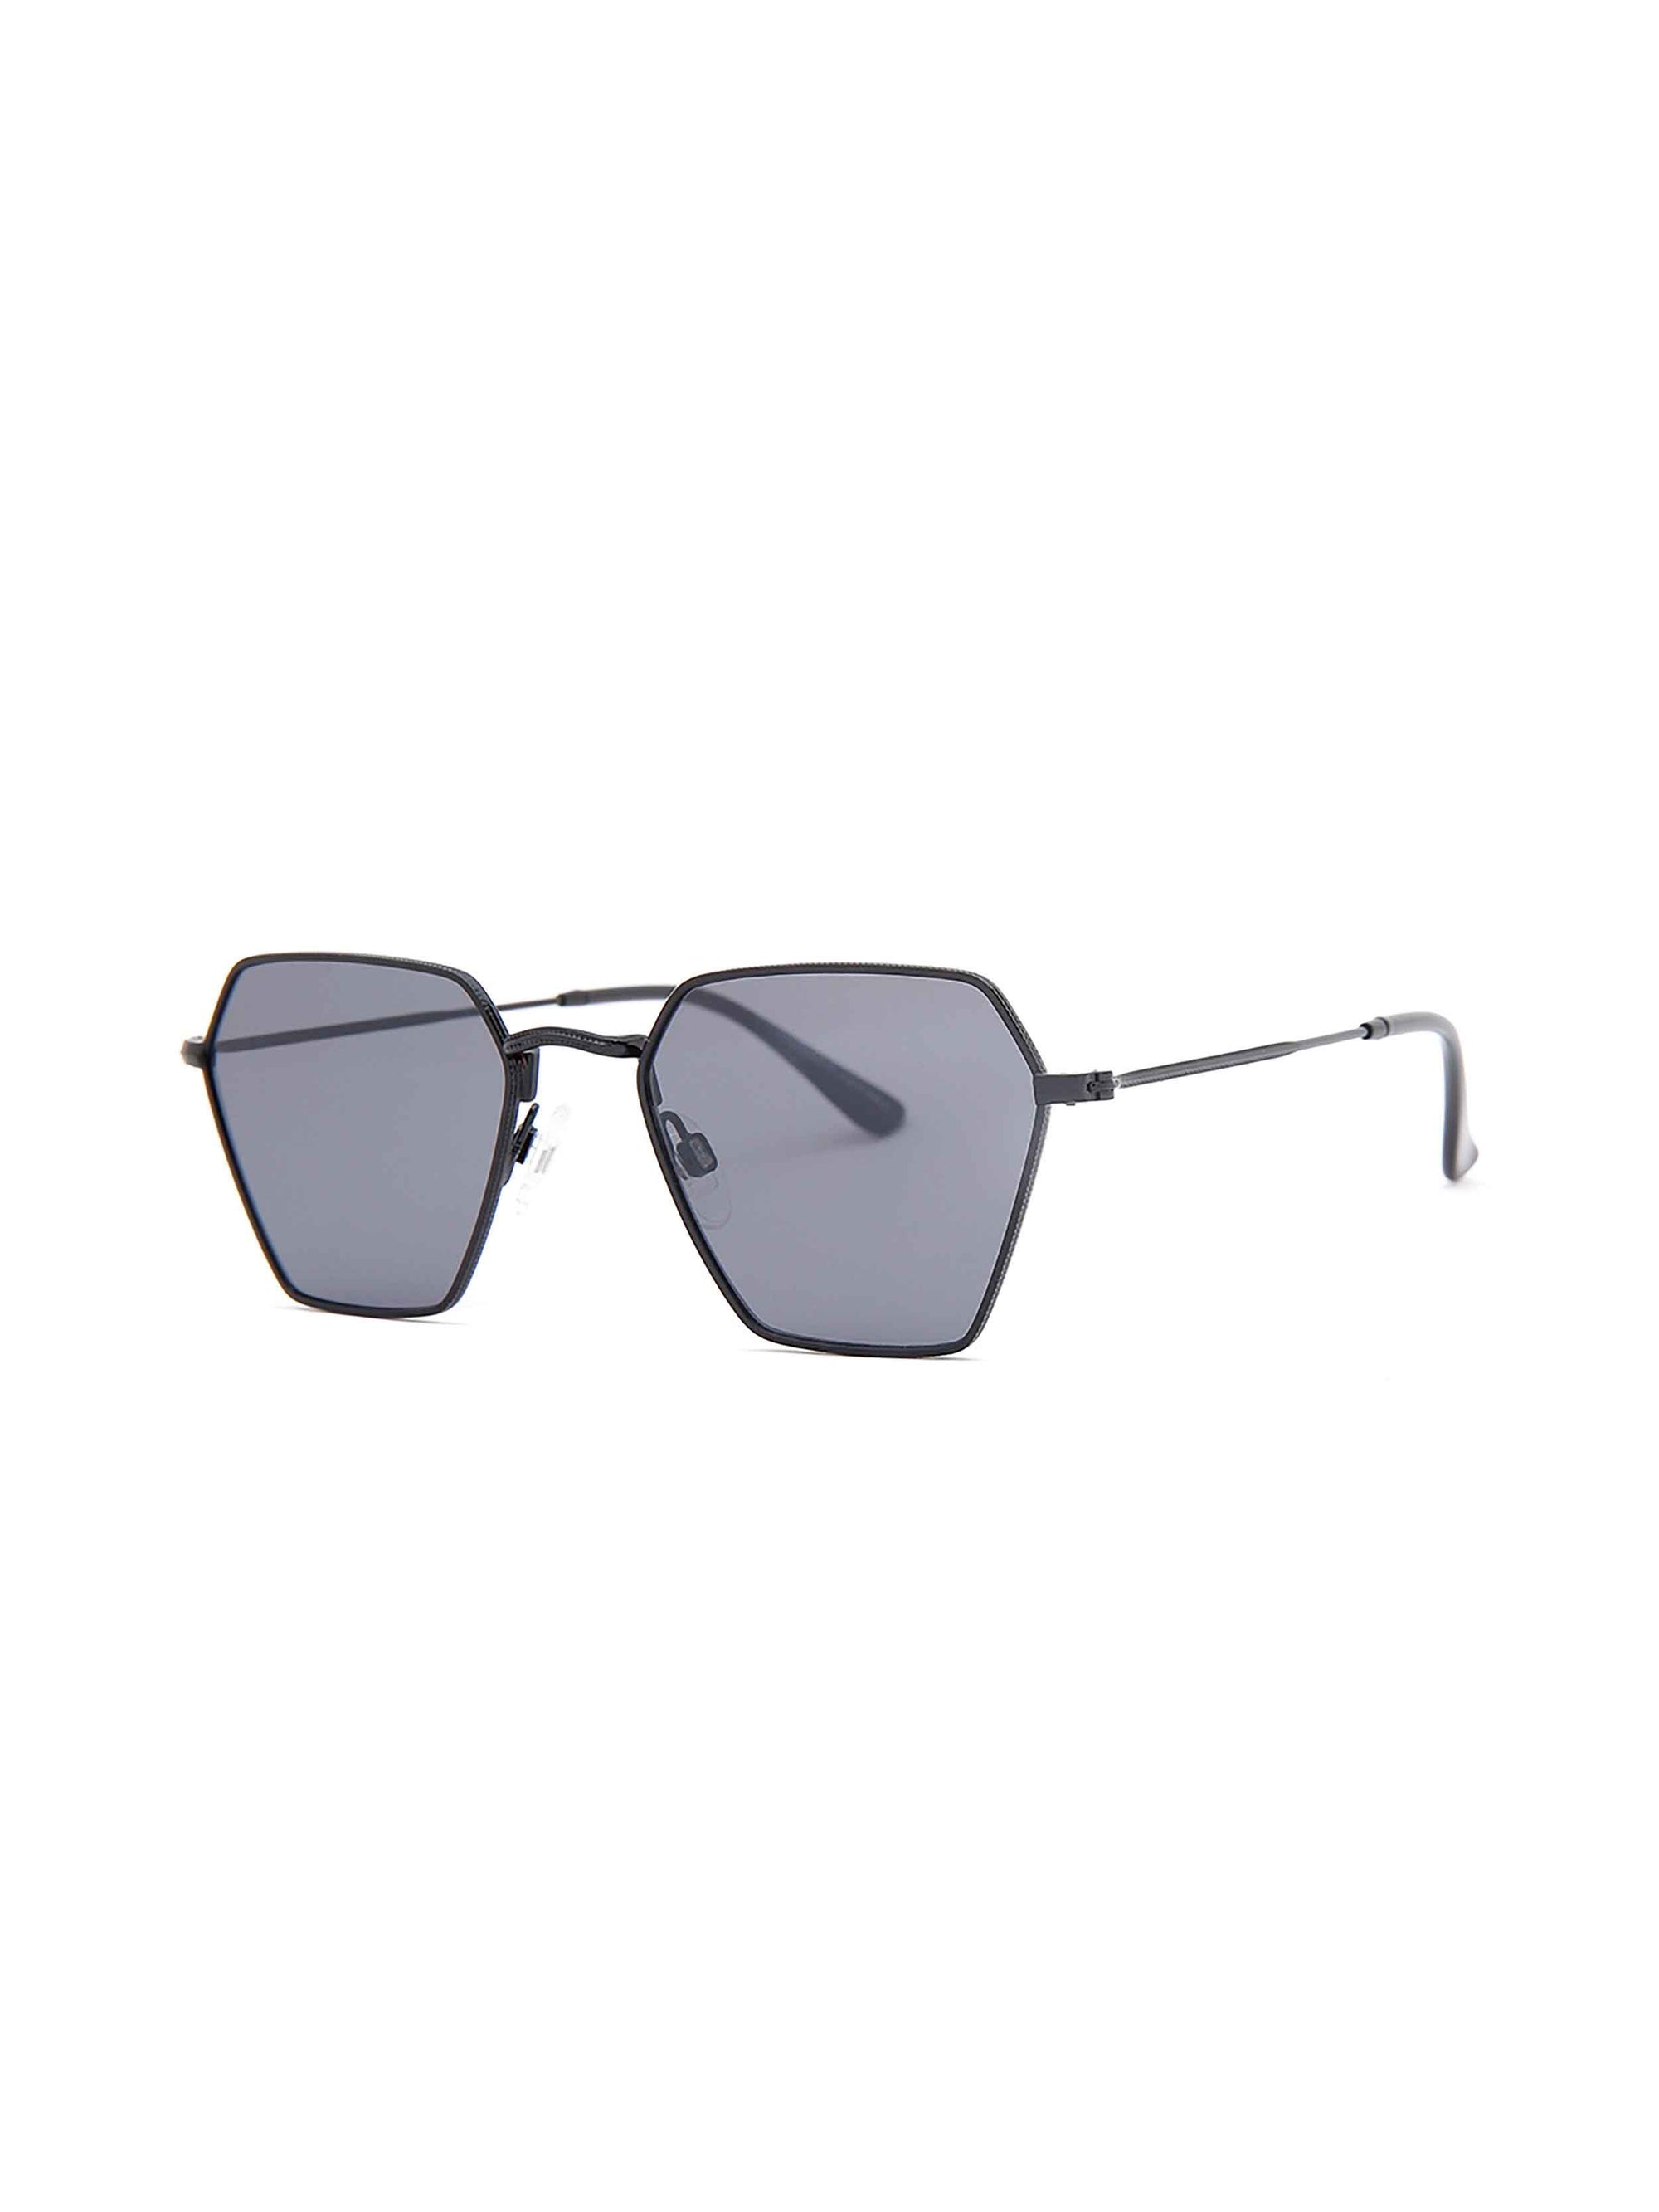 Lentes Carolina Lemke CL1716 01